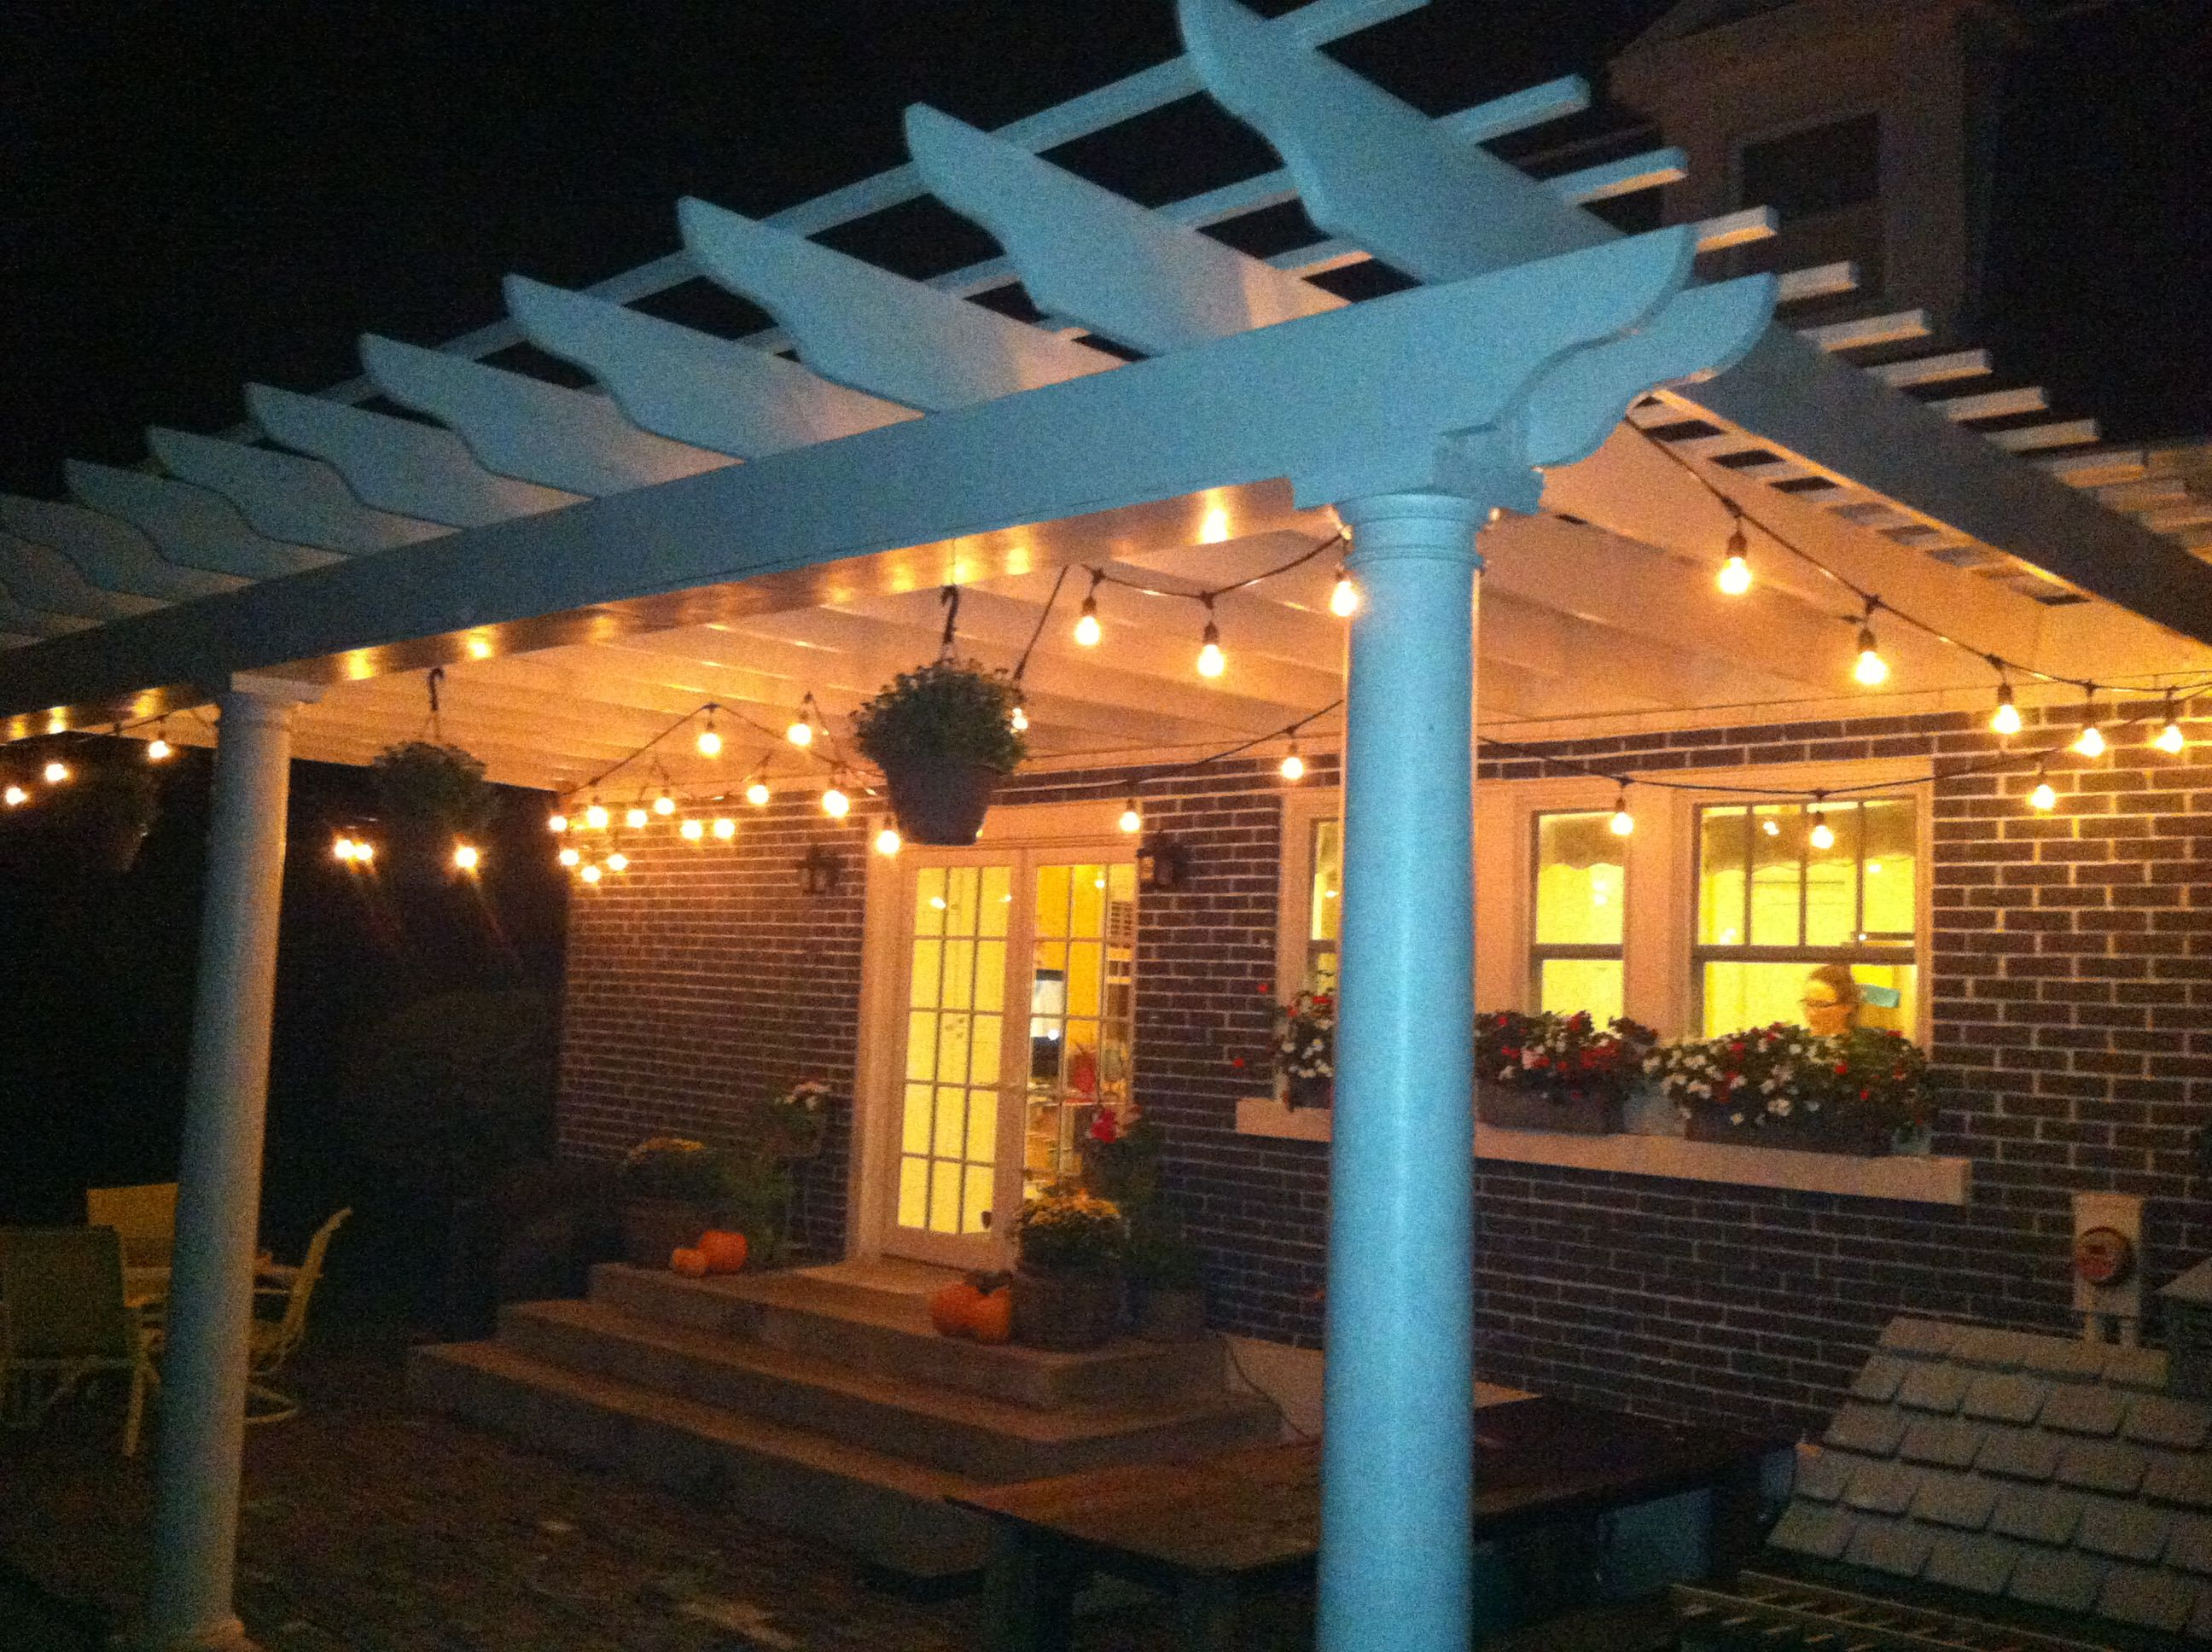 Exceptionnel Our New Pergola And Cafe Patio Lights